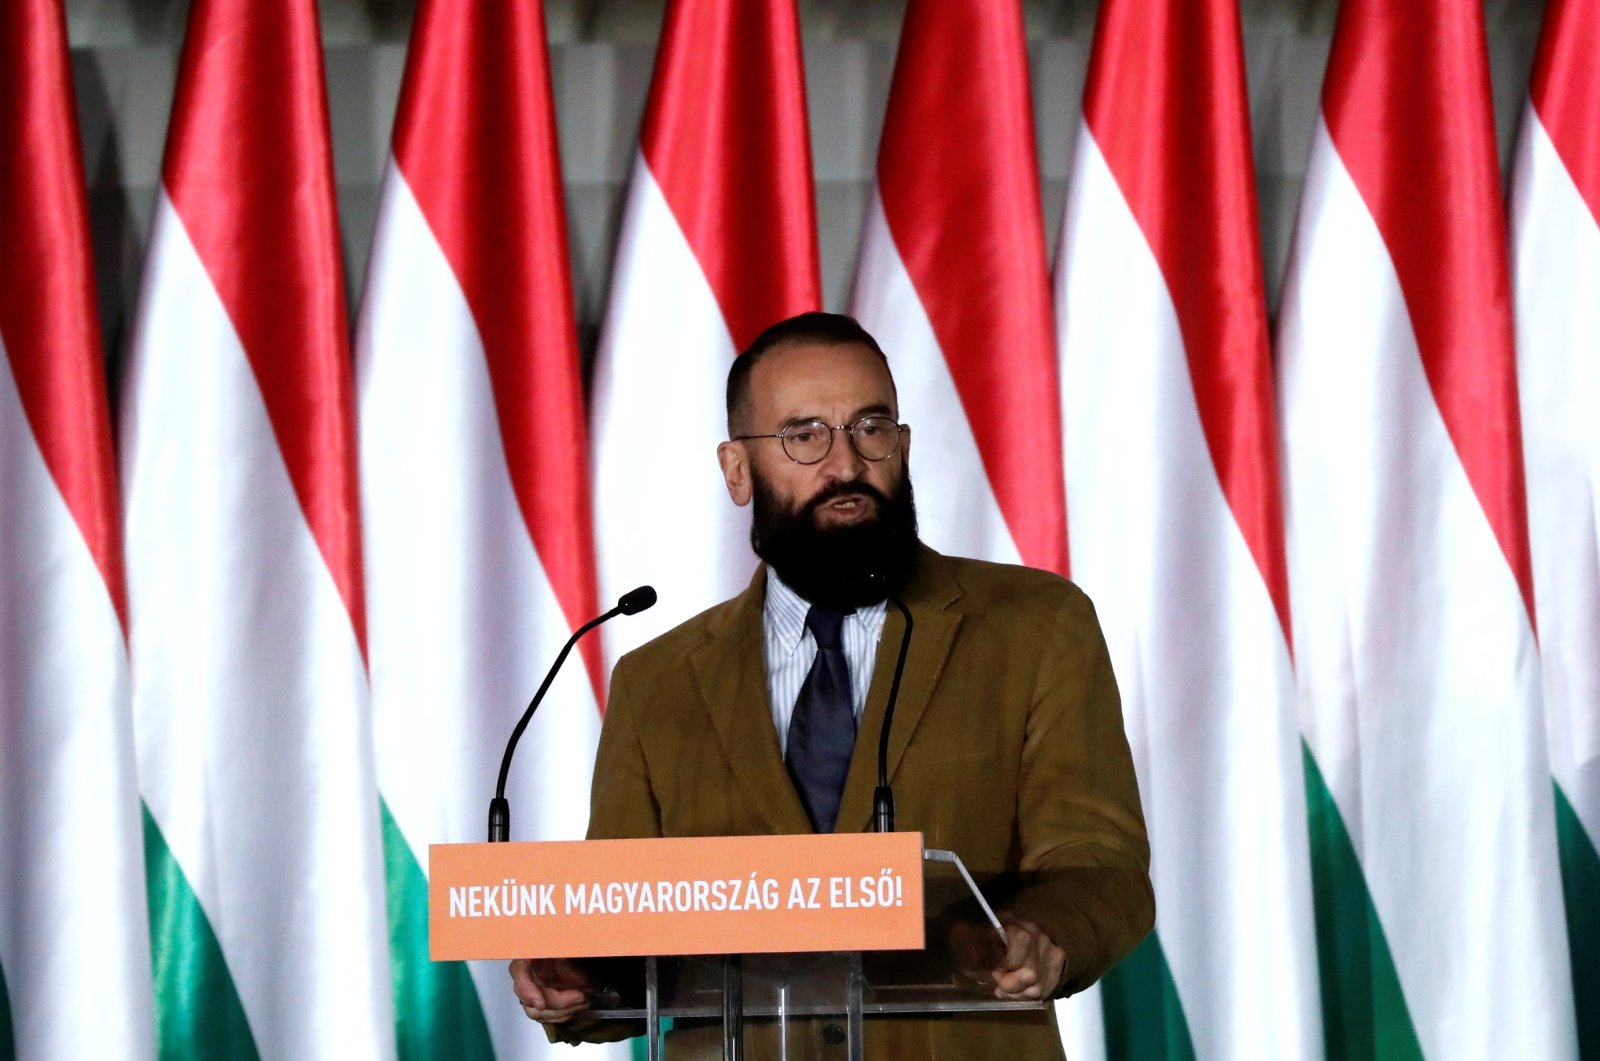 Jozsef Szajer, a senior member of the ruling Fidesz party delivers his speech during the party's campaign ahead of the European Parliament elections in Budapest, Hungary, April 5, 2019. (Reuters Photo)